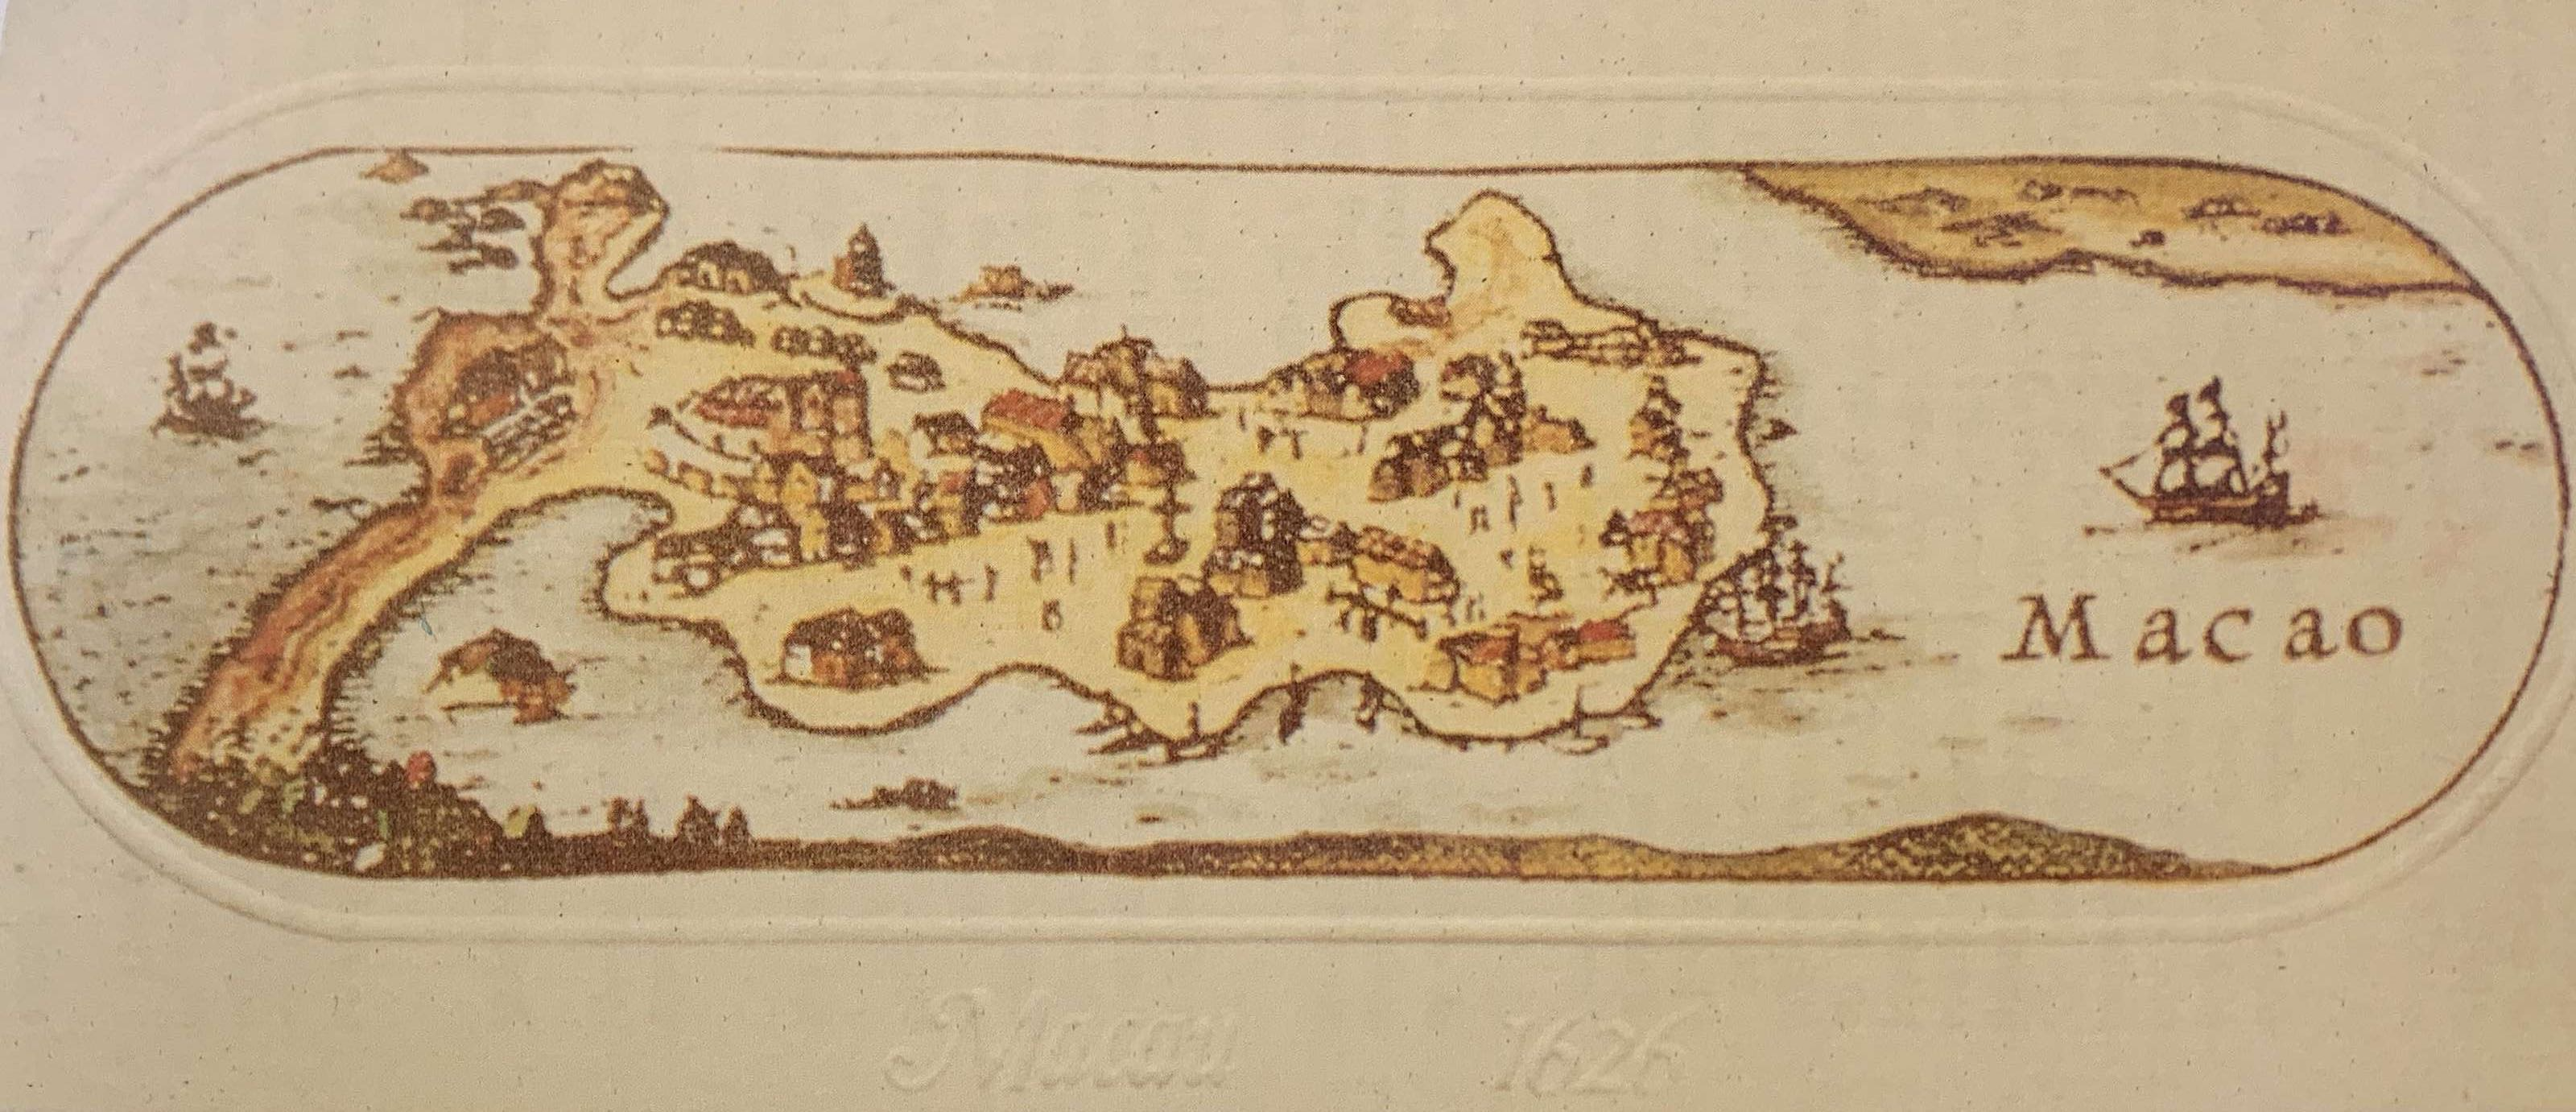 Macau in 1626 by John Speed, in Cronologia da Historia de Macau